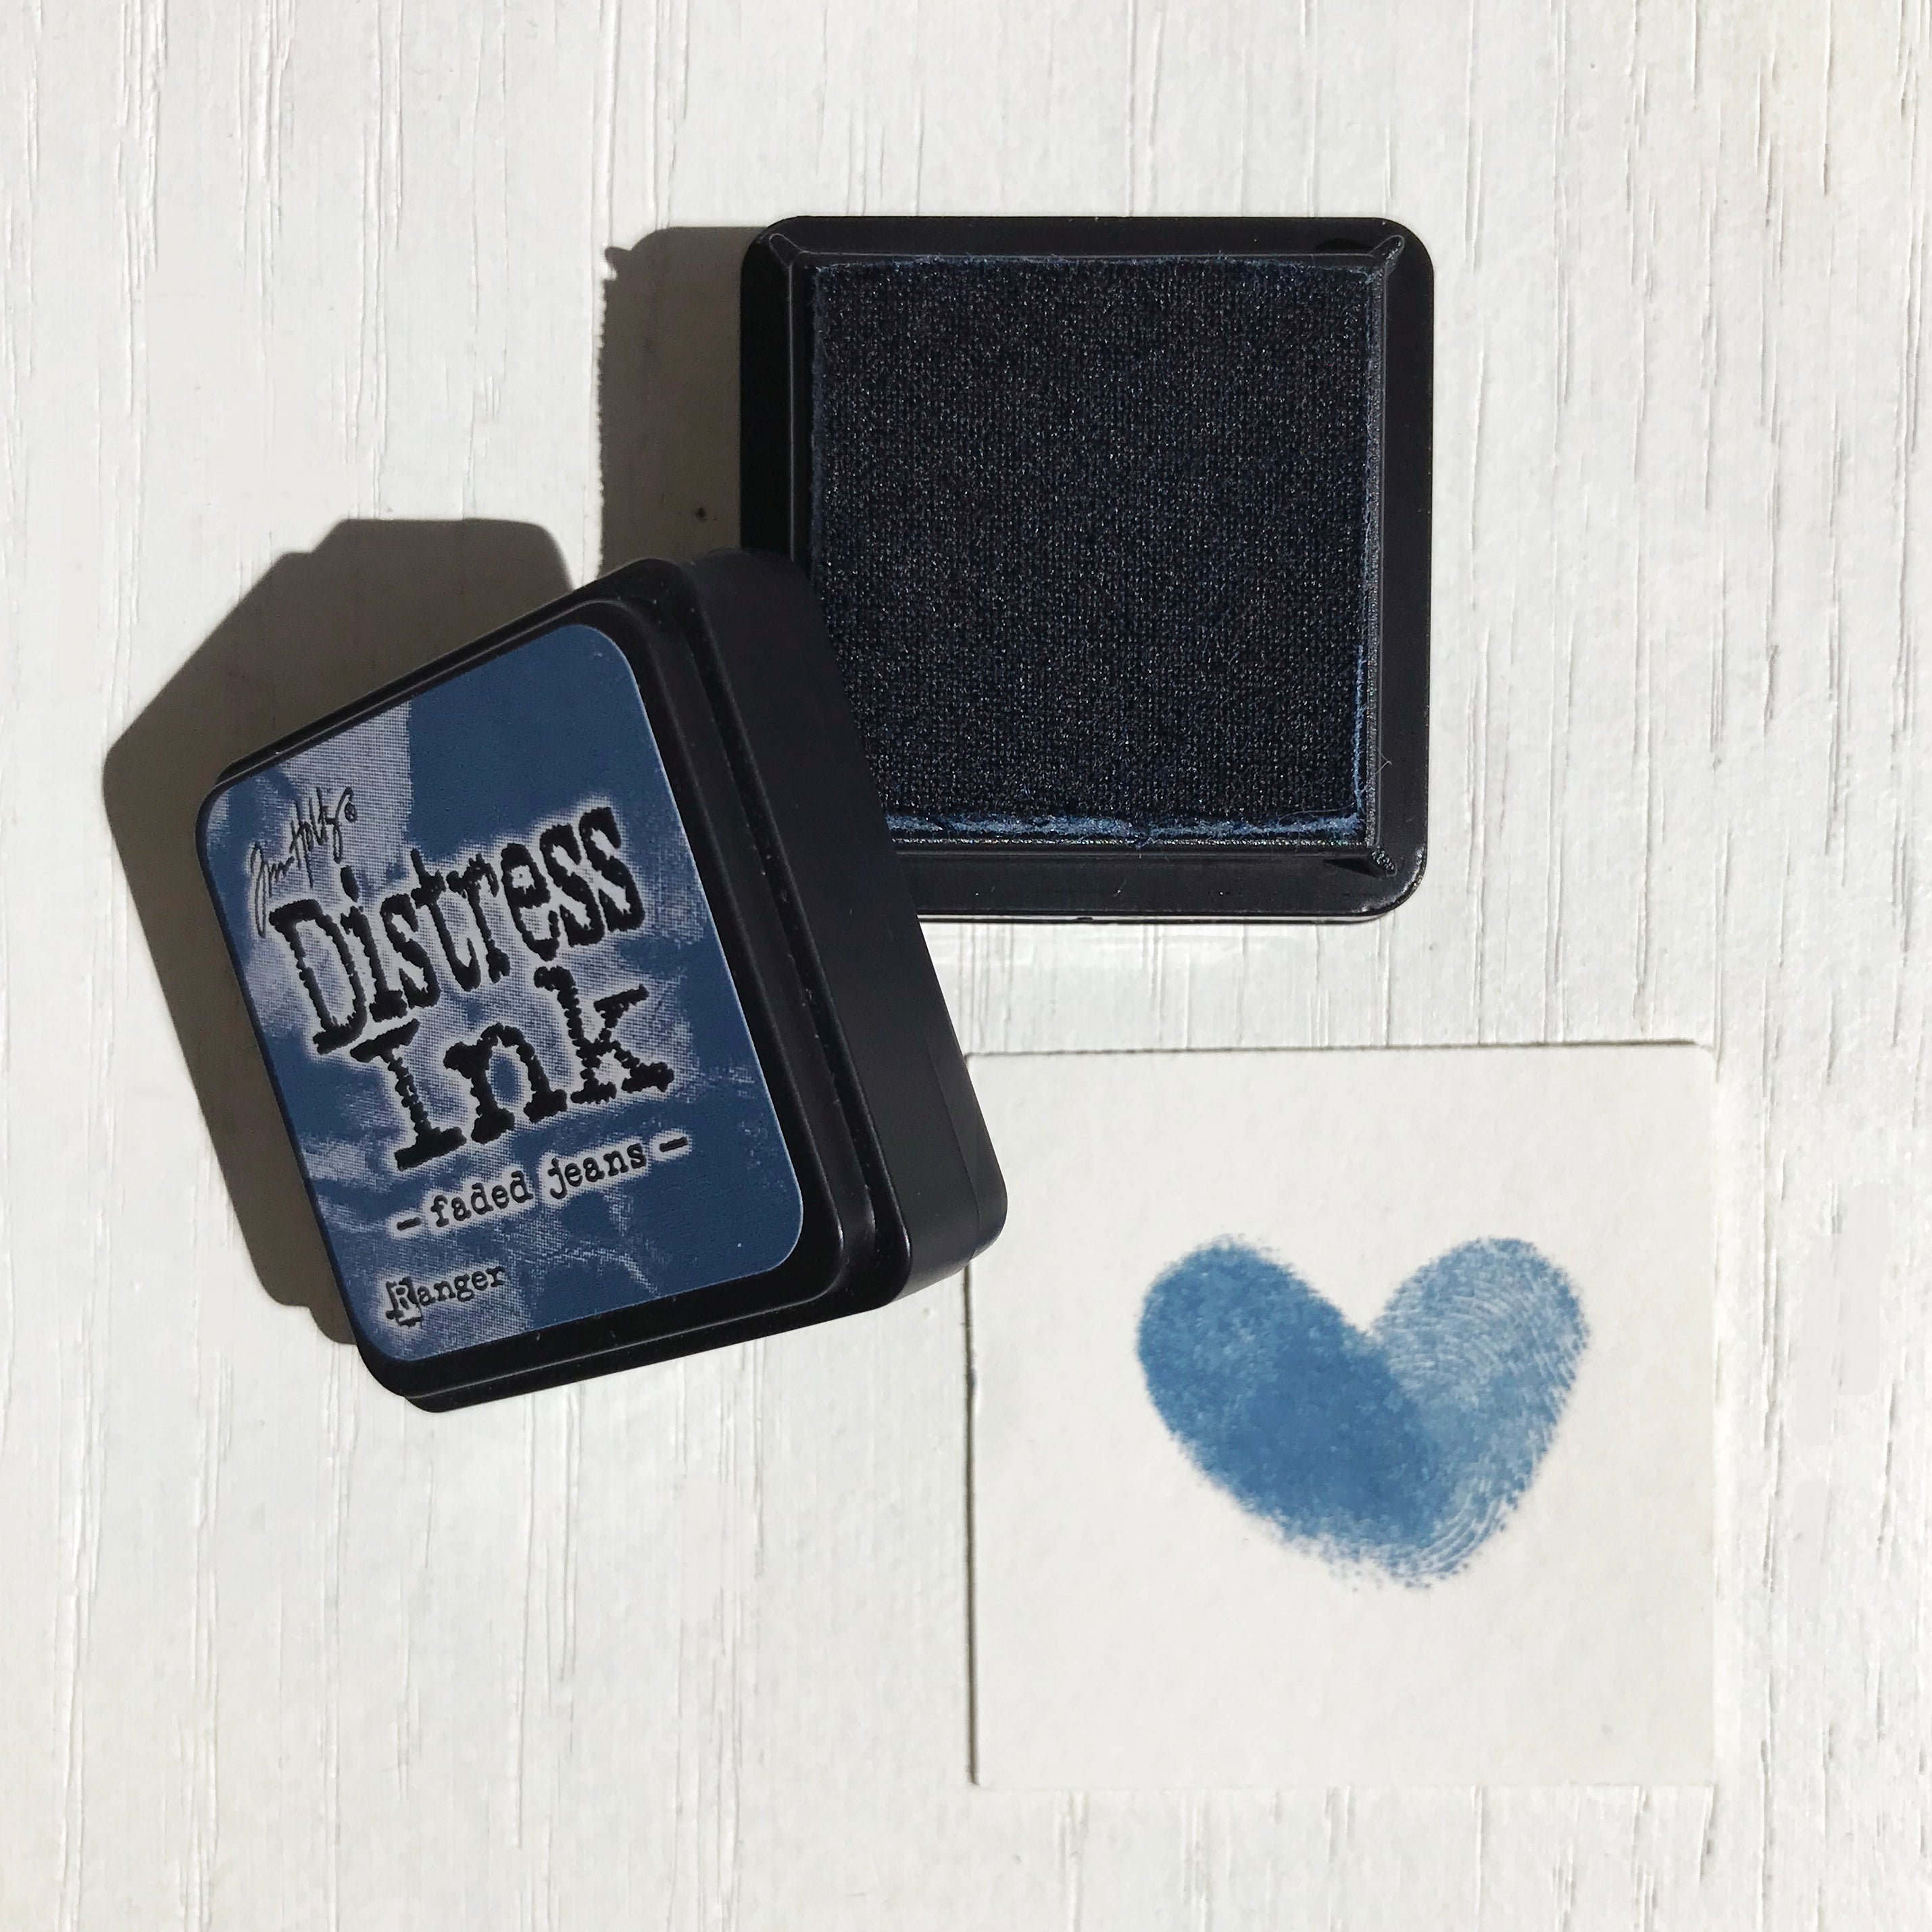 Mini Dye Based Ink Pads for fingerprint guest book artwork